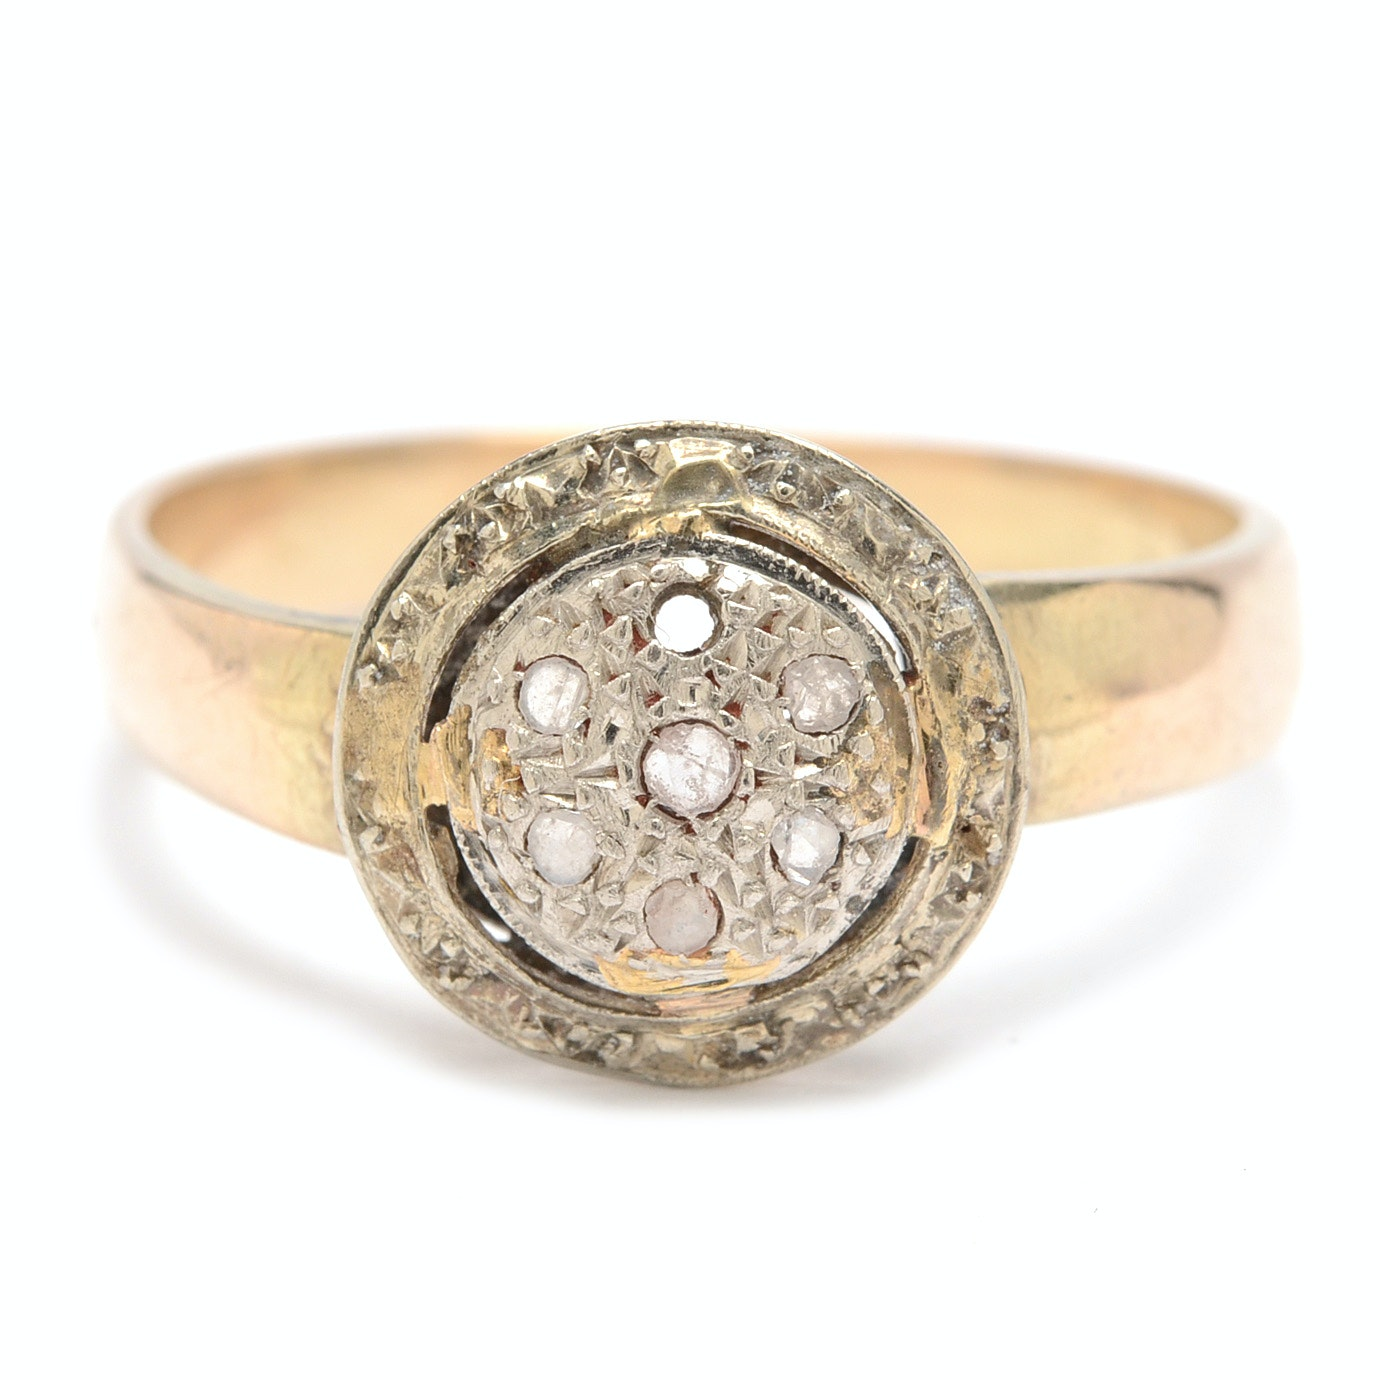 Antique 14K White Gold and 10K Yellow Gold Diamond Ring